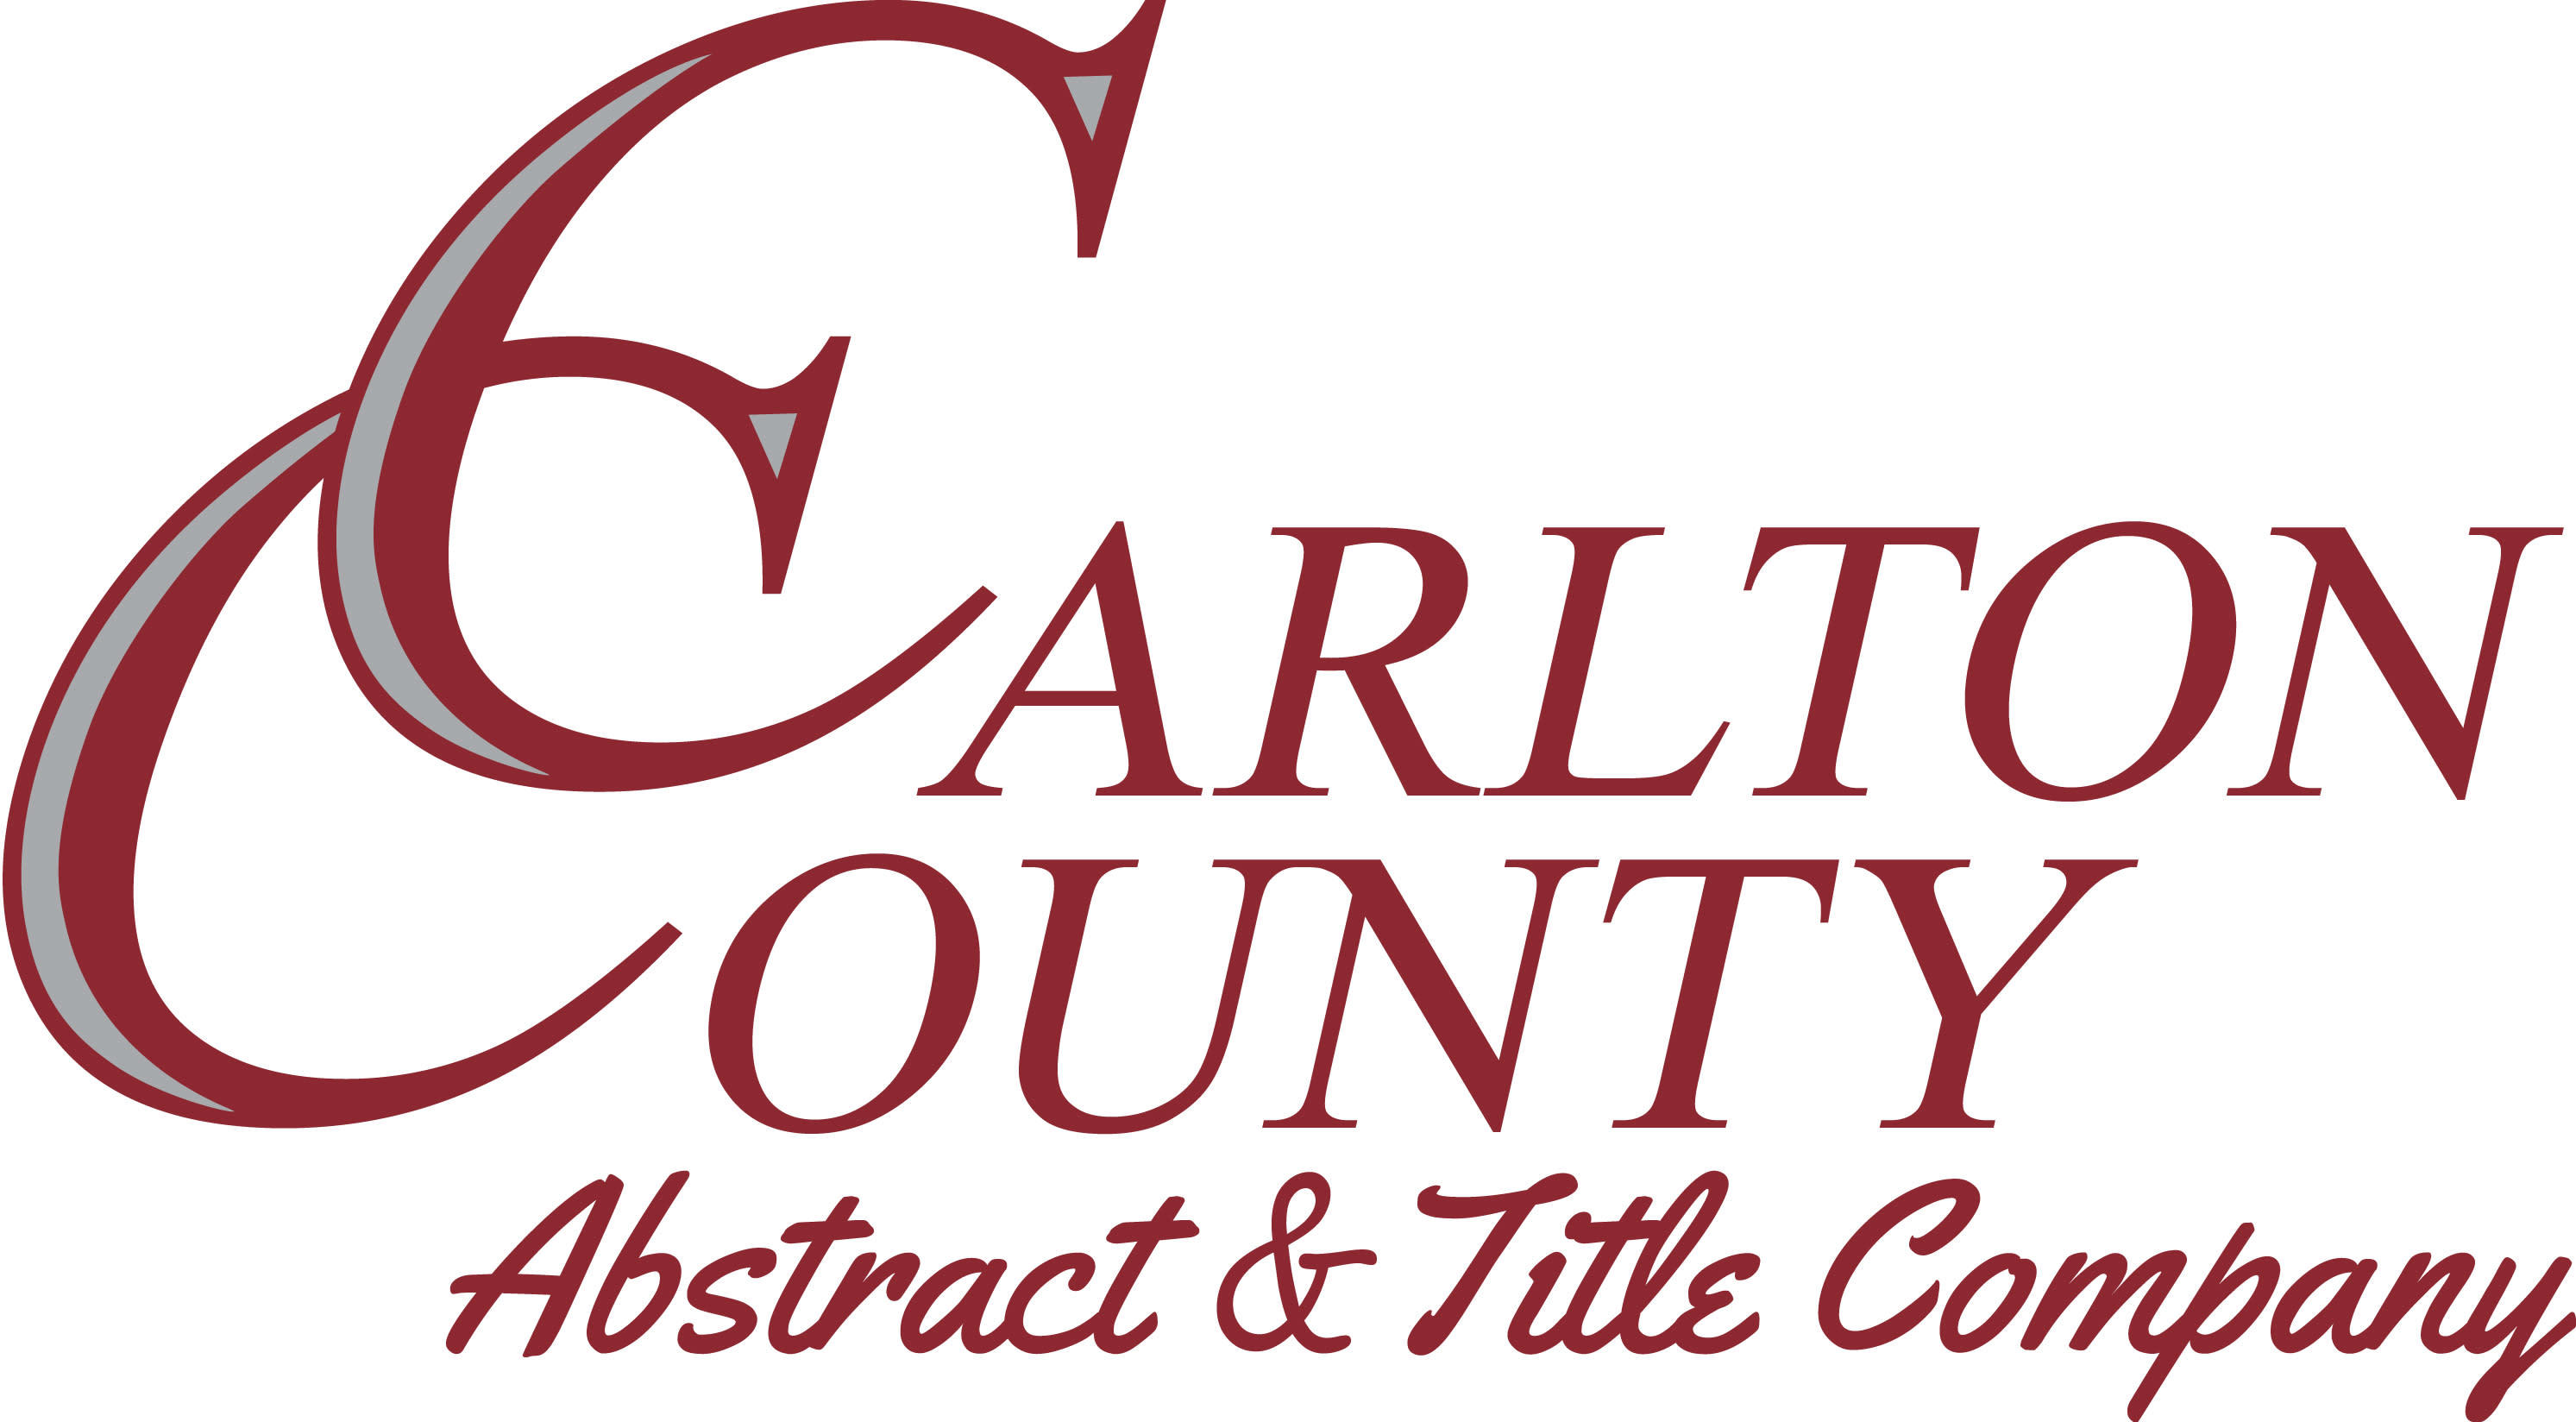 Carlton County Abstract & Title Company Logo